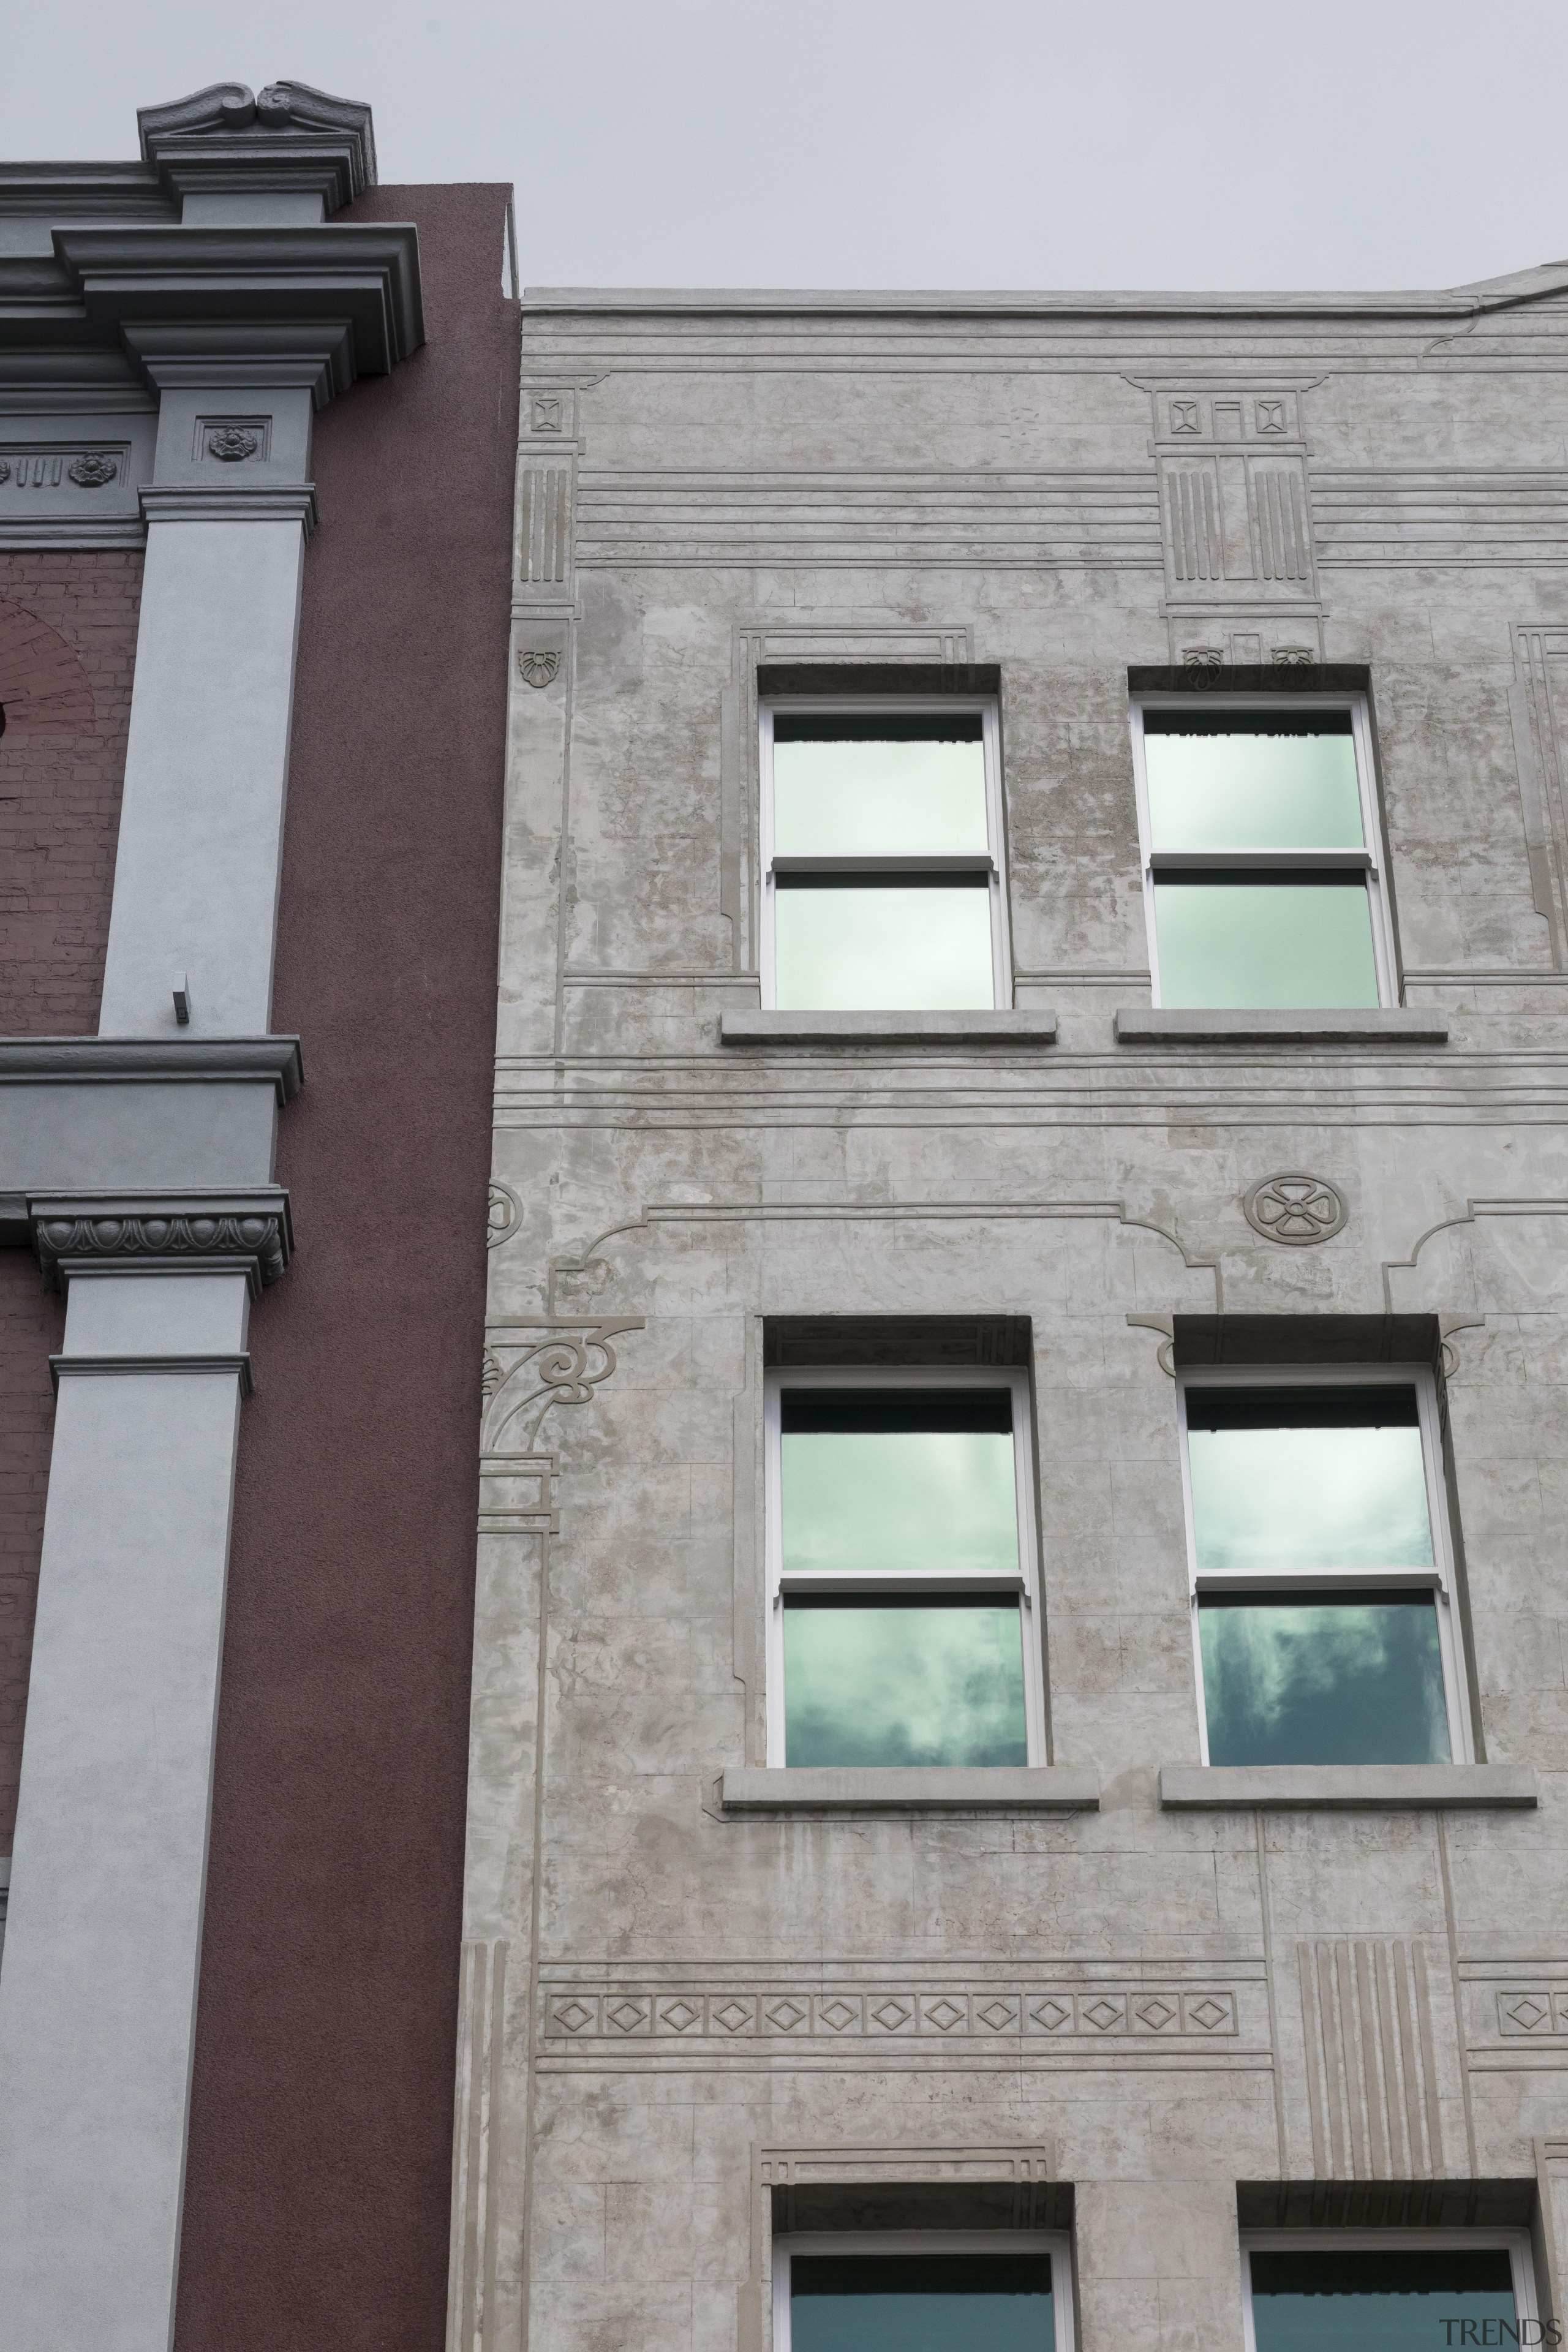 Raised and flat  two buildings from nearly apartment, architecture, building, commercial building, condominium, daytime, facade, house, wall, window, gray